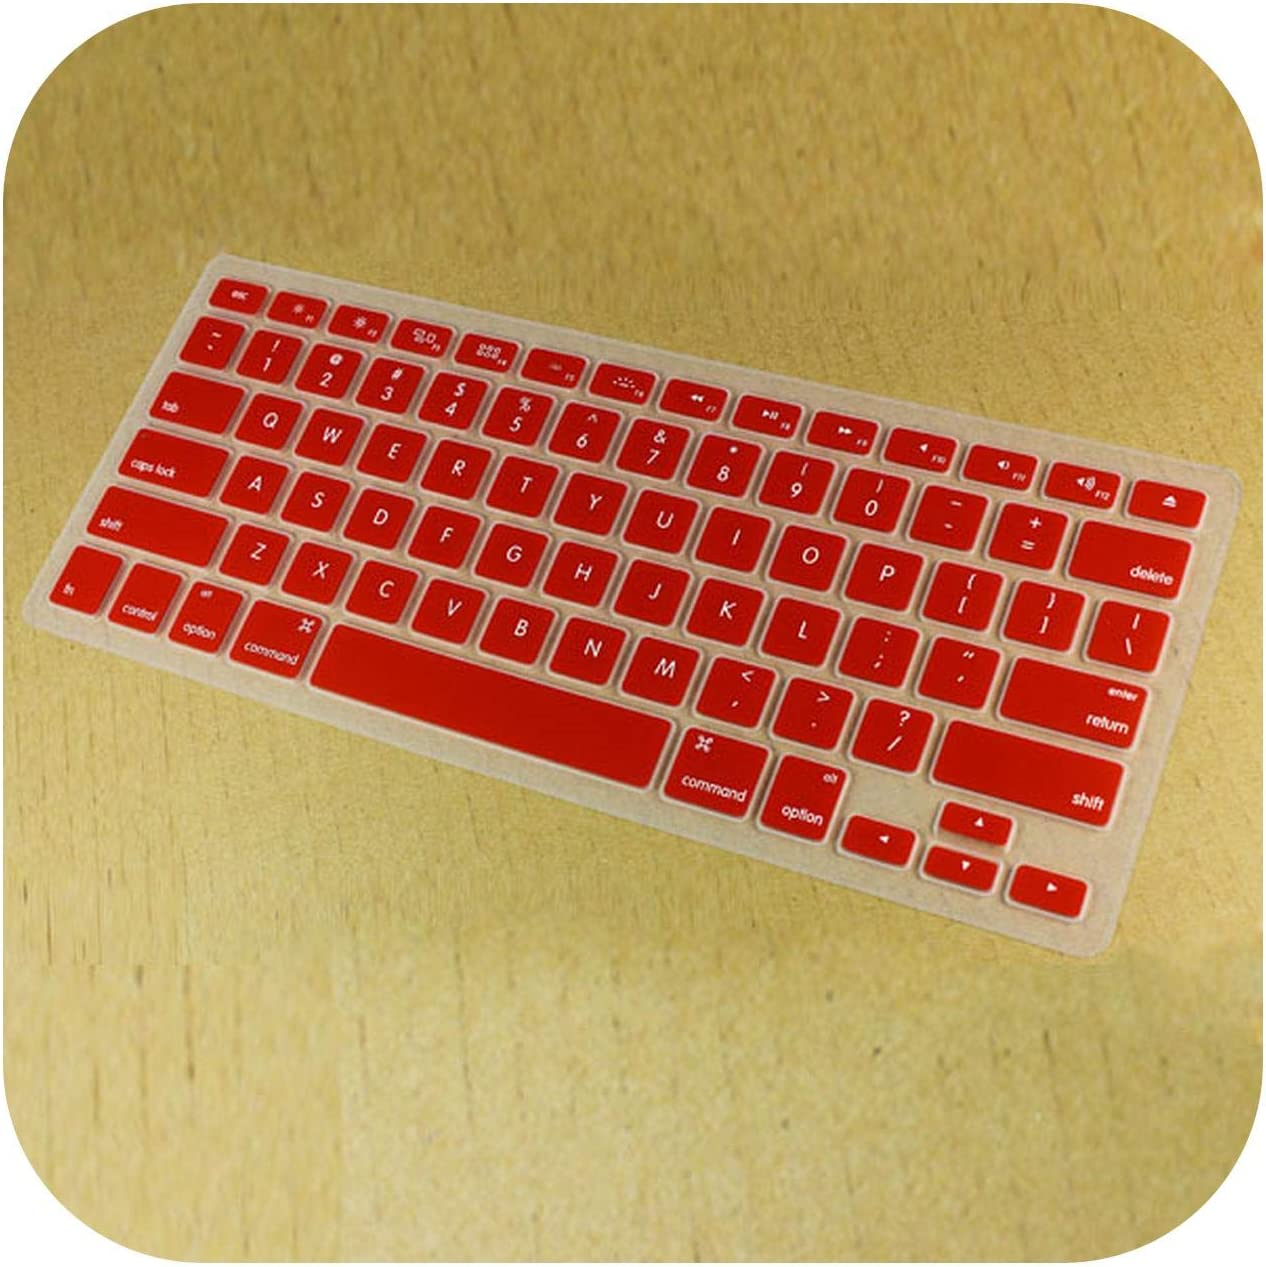 for MacBook Pro Retina 13 15 17 Inch Color Protector Cover Silicone Keyboard Skin Cover Film for Mac Book Air 13.3-Orange